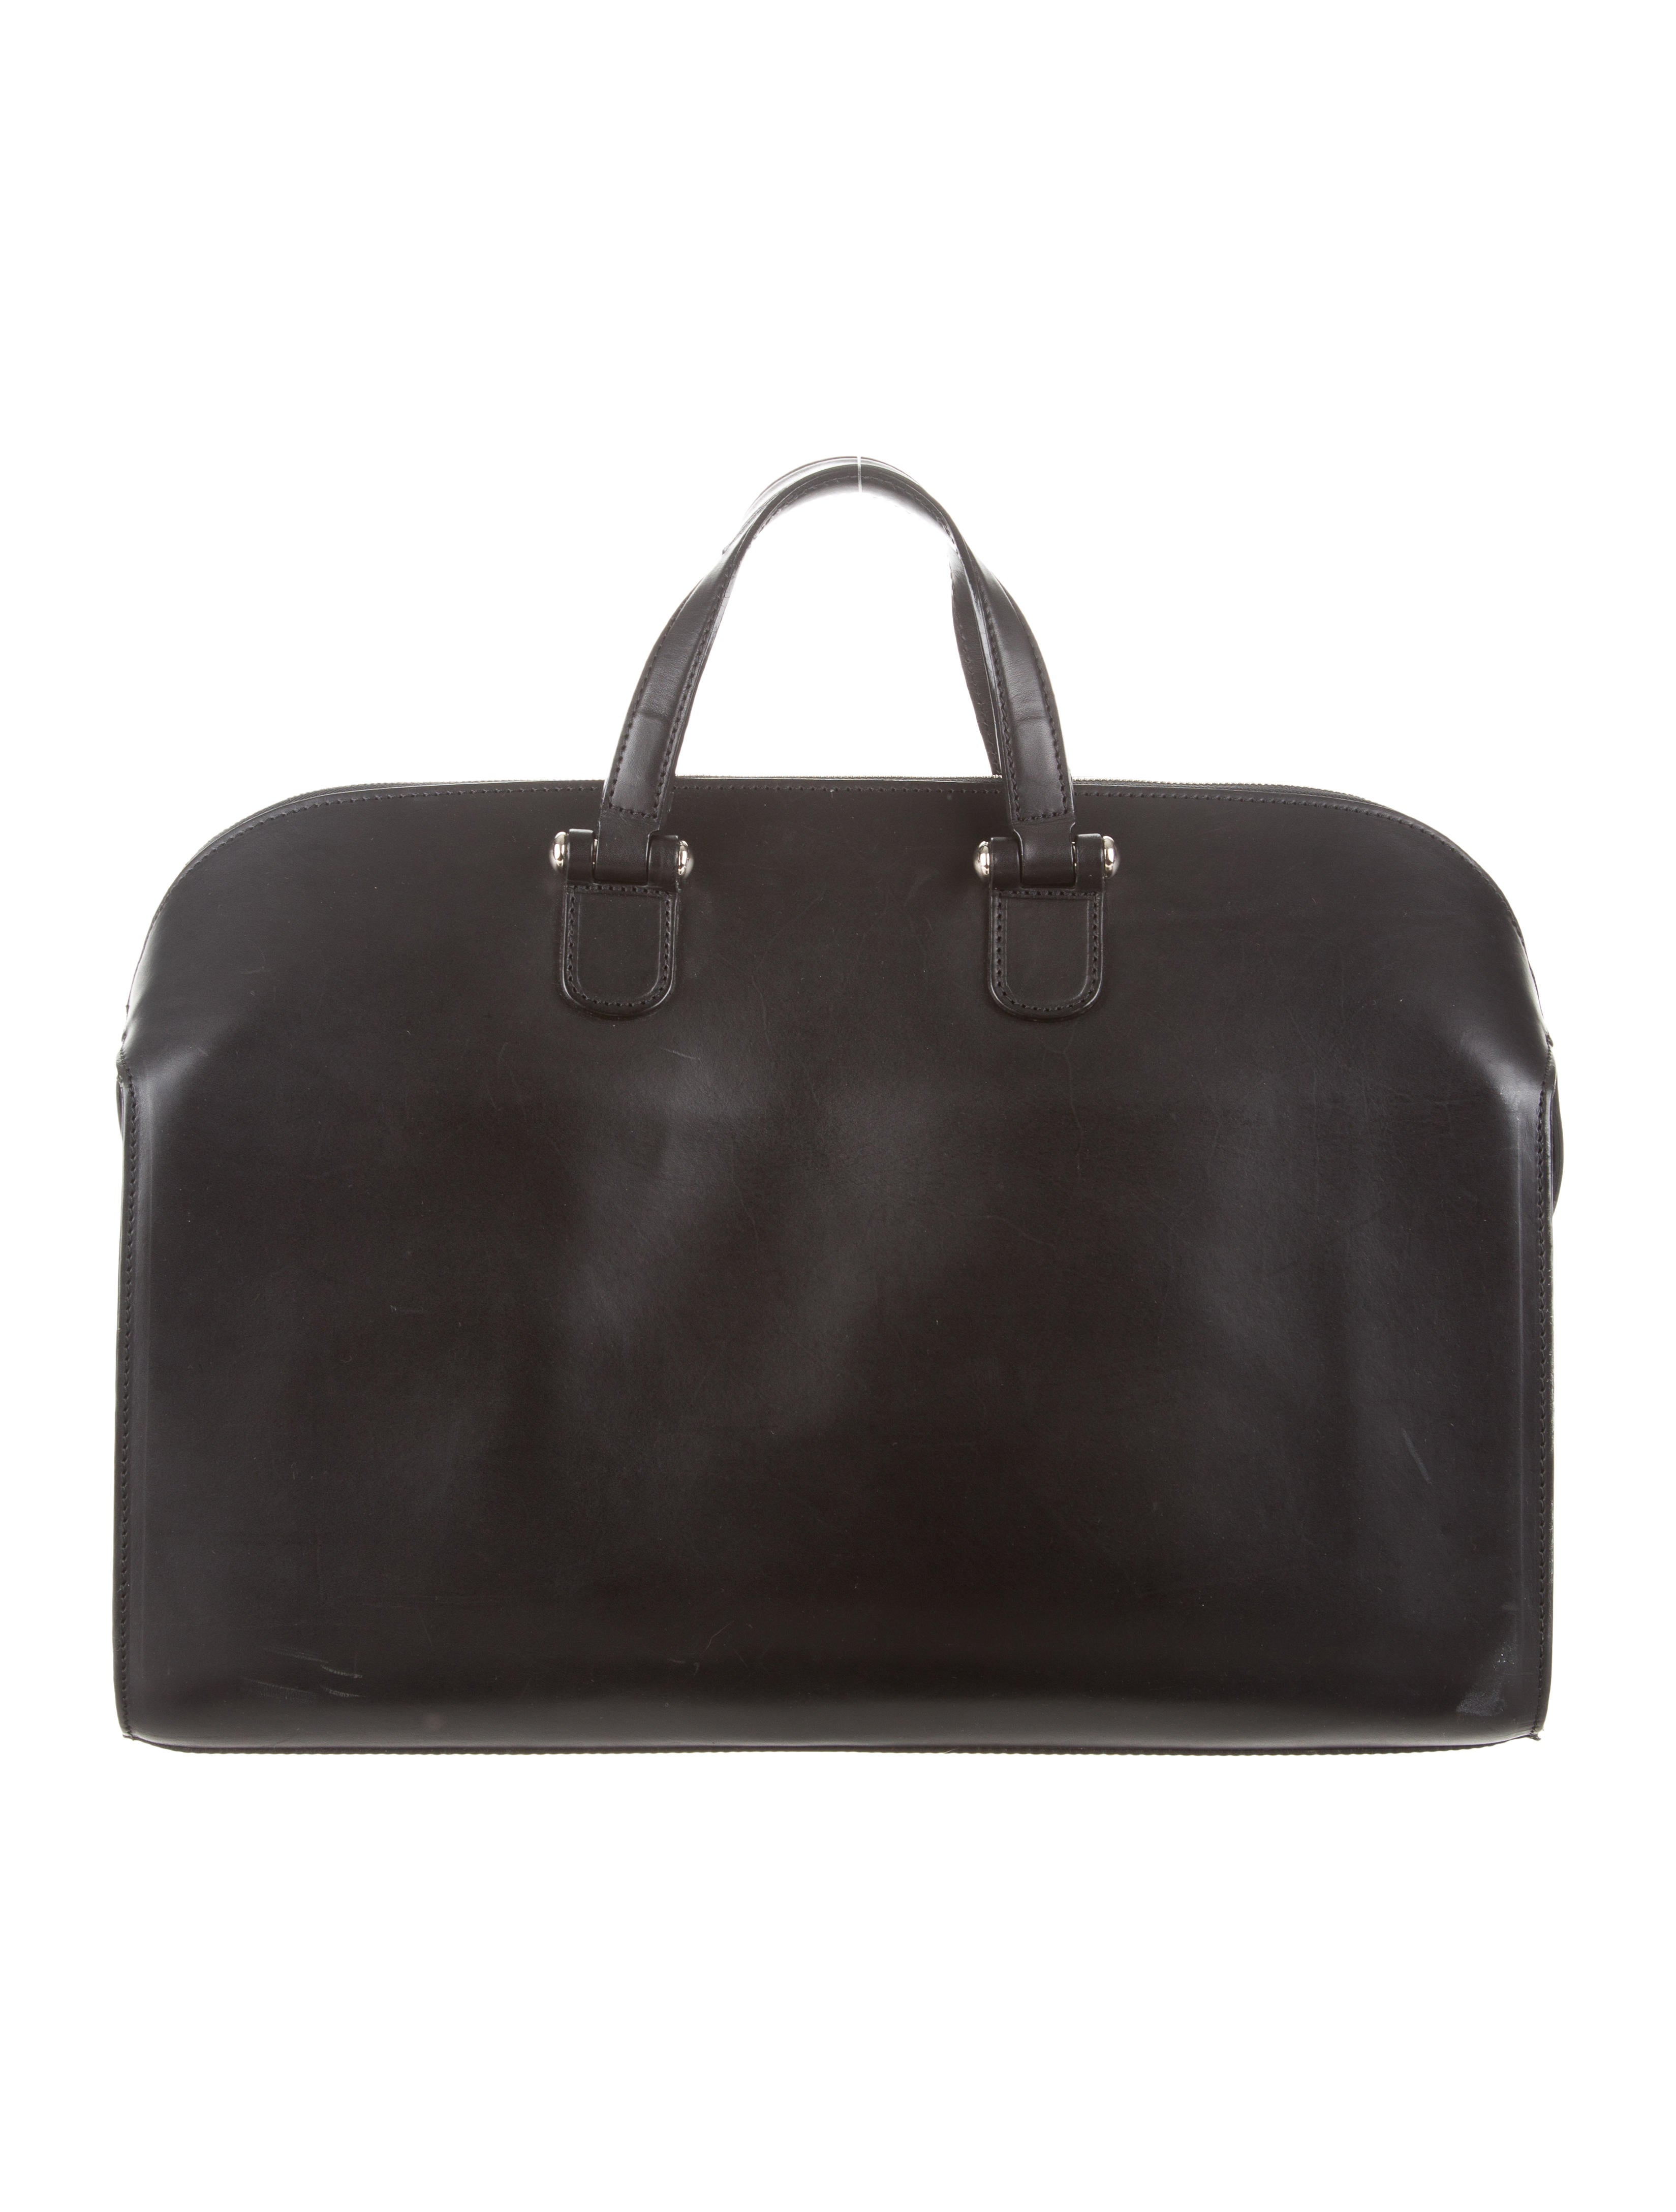 bill amberg leather duffel bag bags abg20024 the realreal. Black Bedroom Furniture Sets. Home Design Ideas